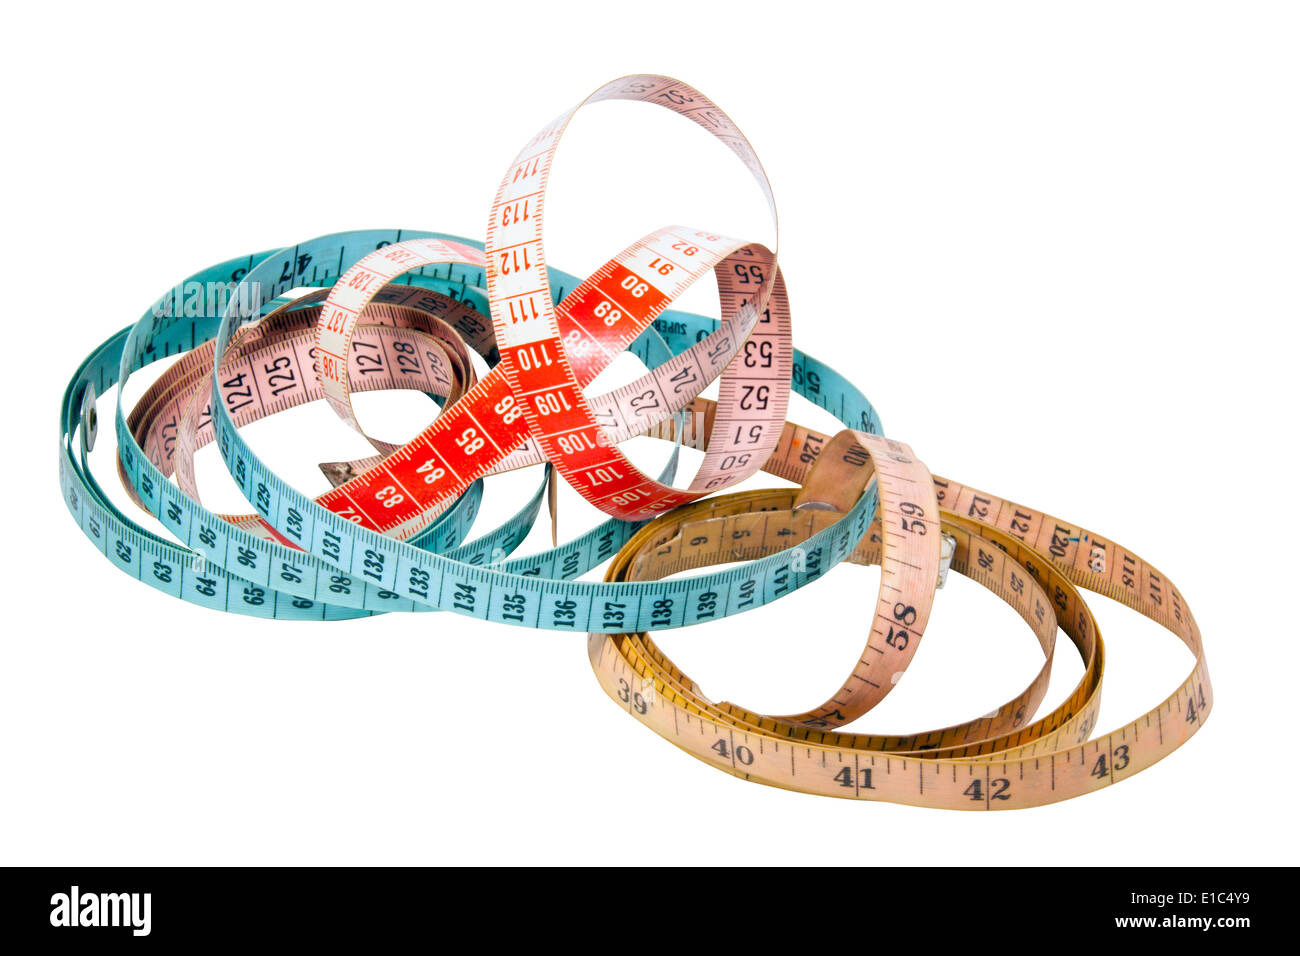 three tape measures marked in inches and centimeters Stock Photo